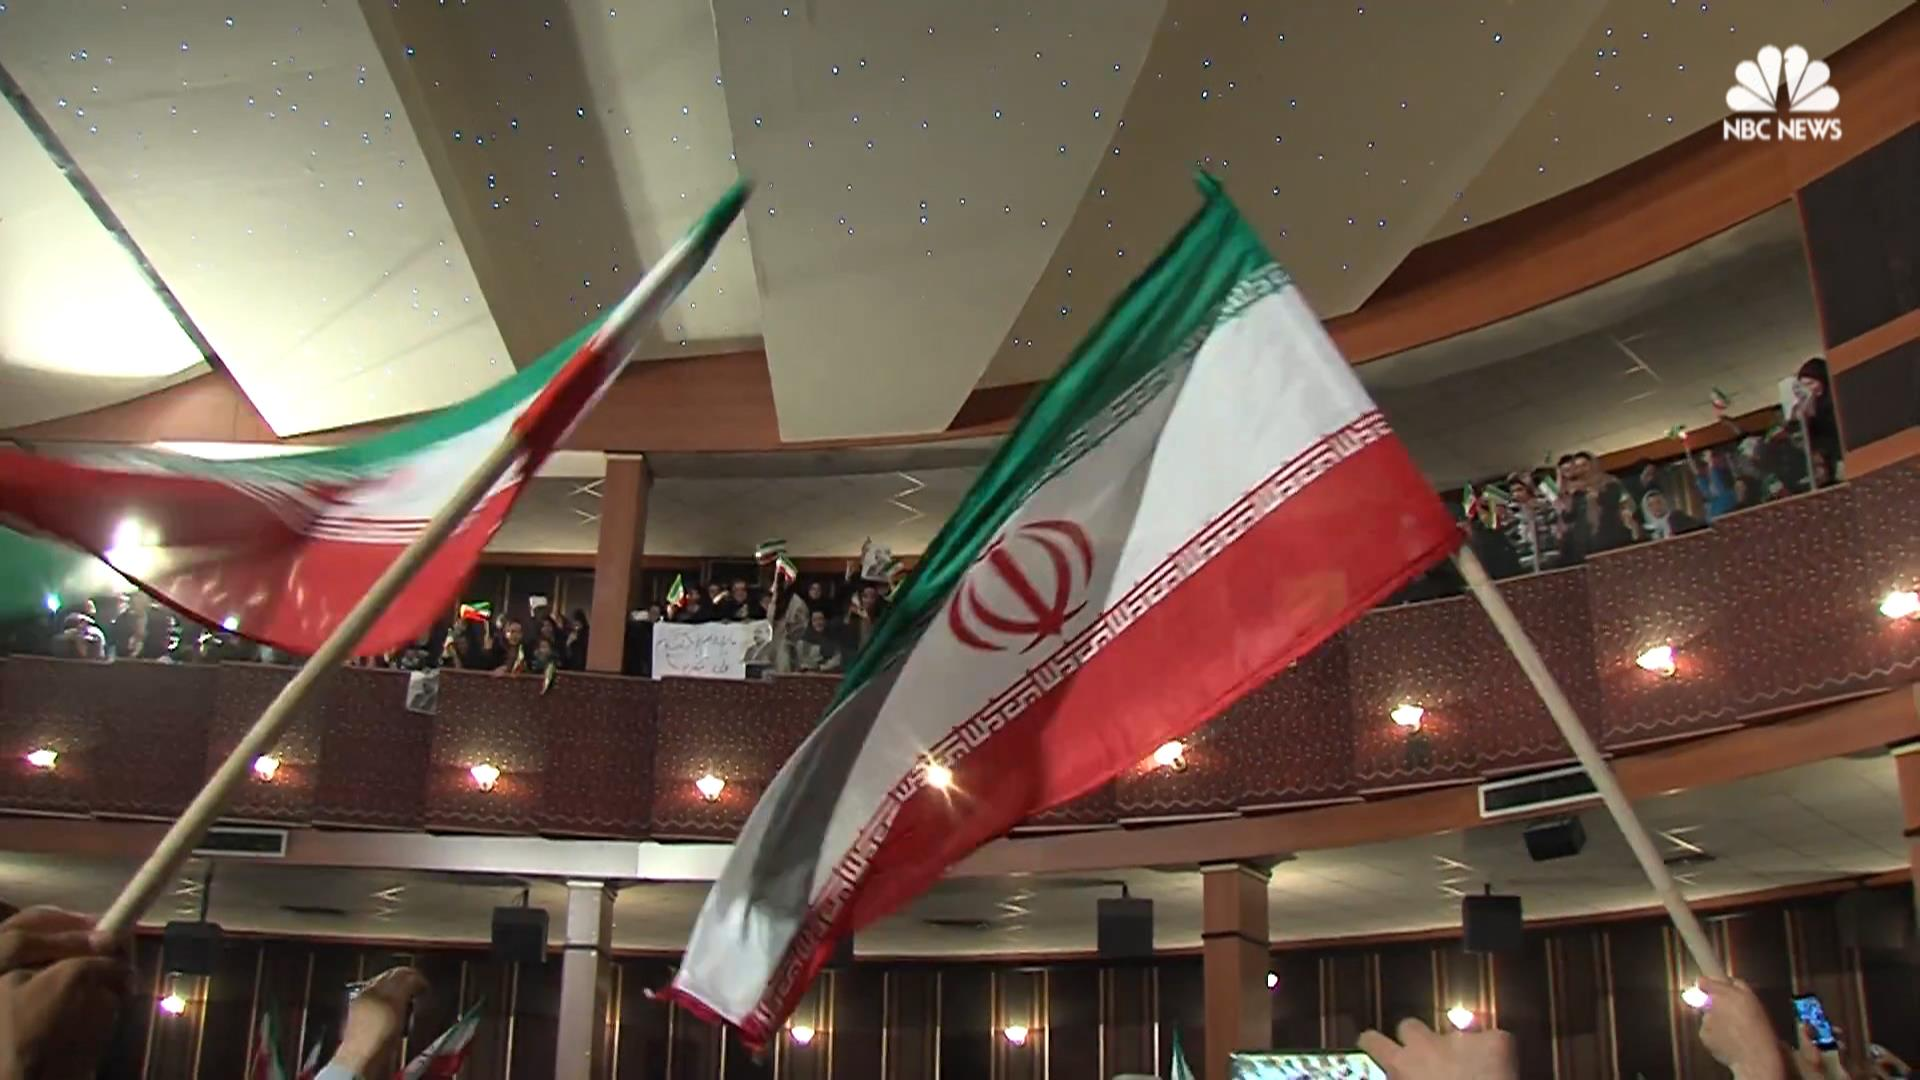 Iran Presidential Election Scenes From Candidate Rallies Nbc News